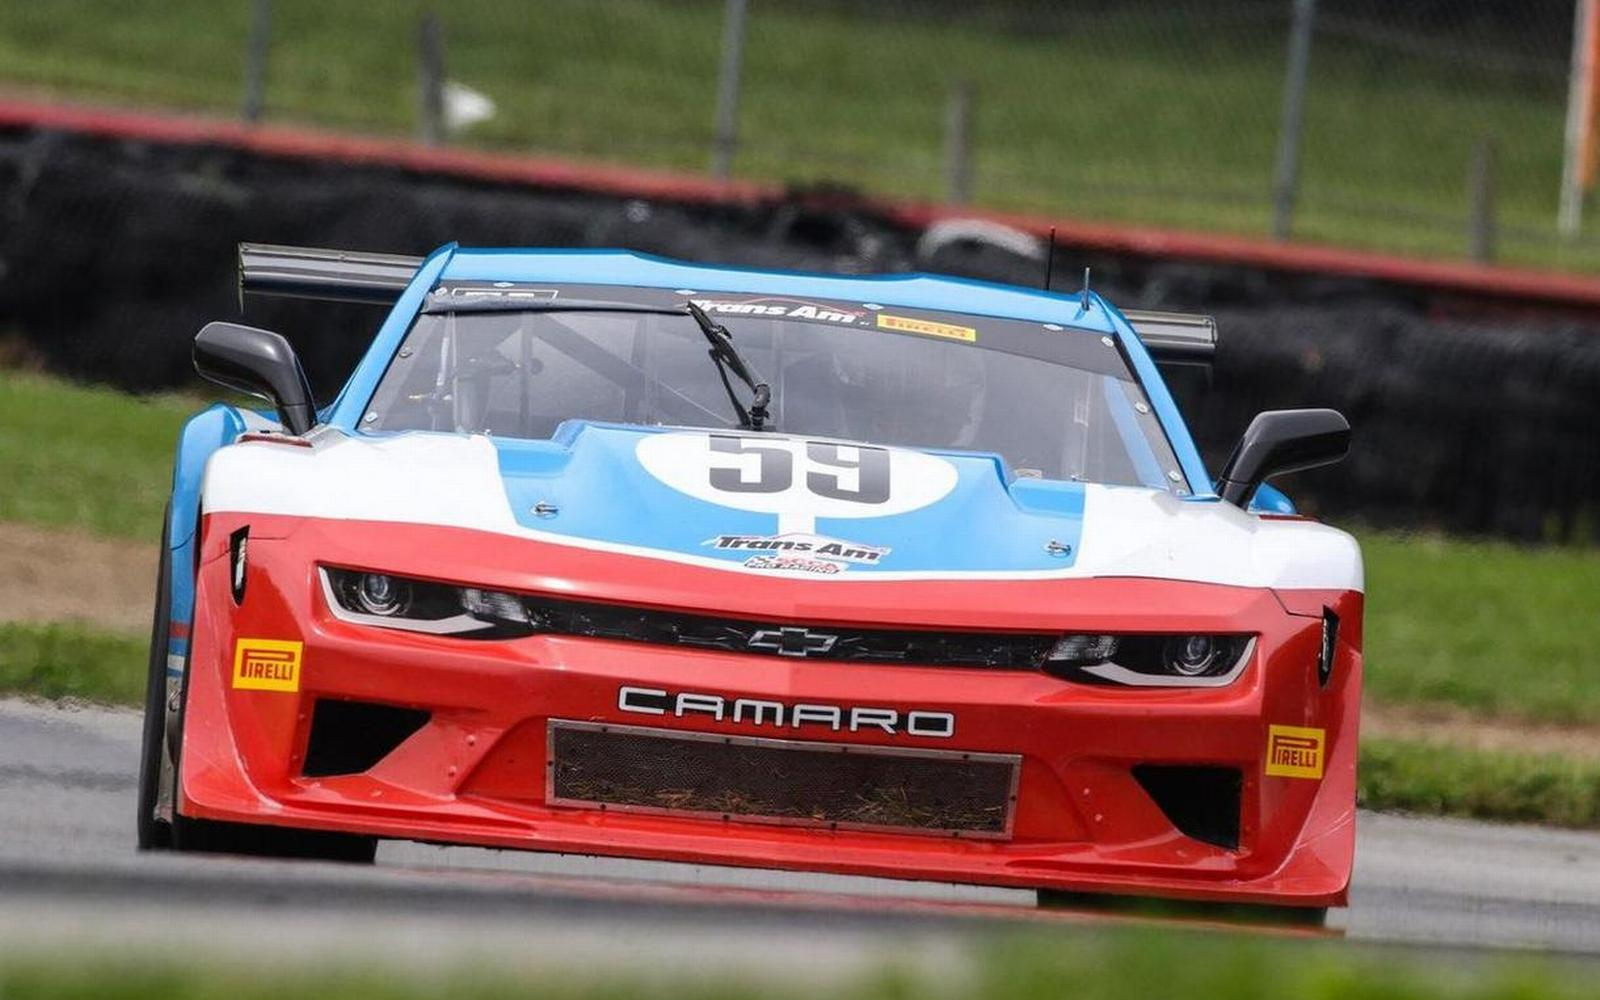 Gregg Debuts Stunning Trans Am Camaro at Rain Affected Mid Ohio